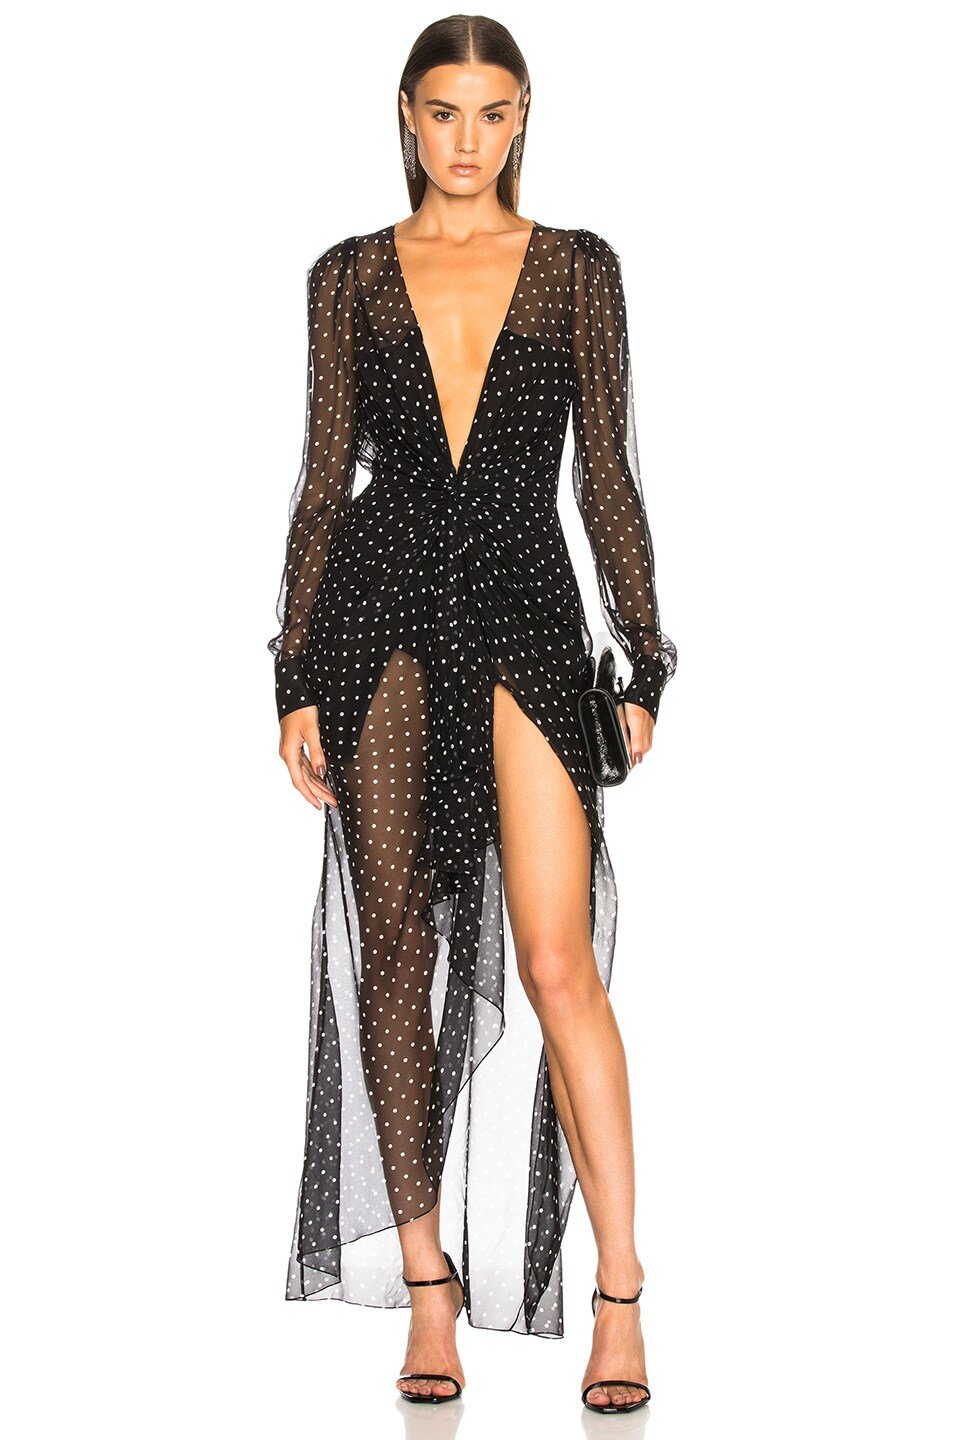 00b97a2c Image 1 of Alexandre Vauthier Dot Print Georgette Plunging Maxi Dress in  Black & White